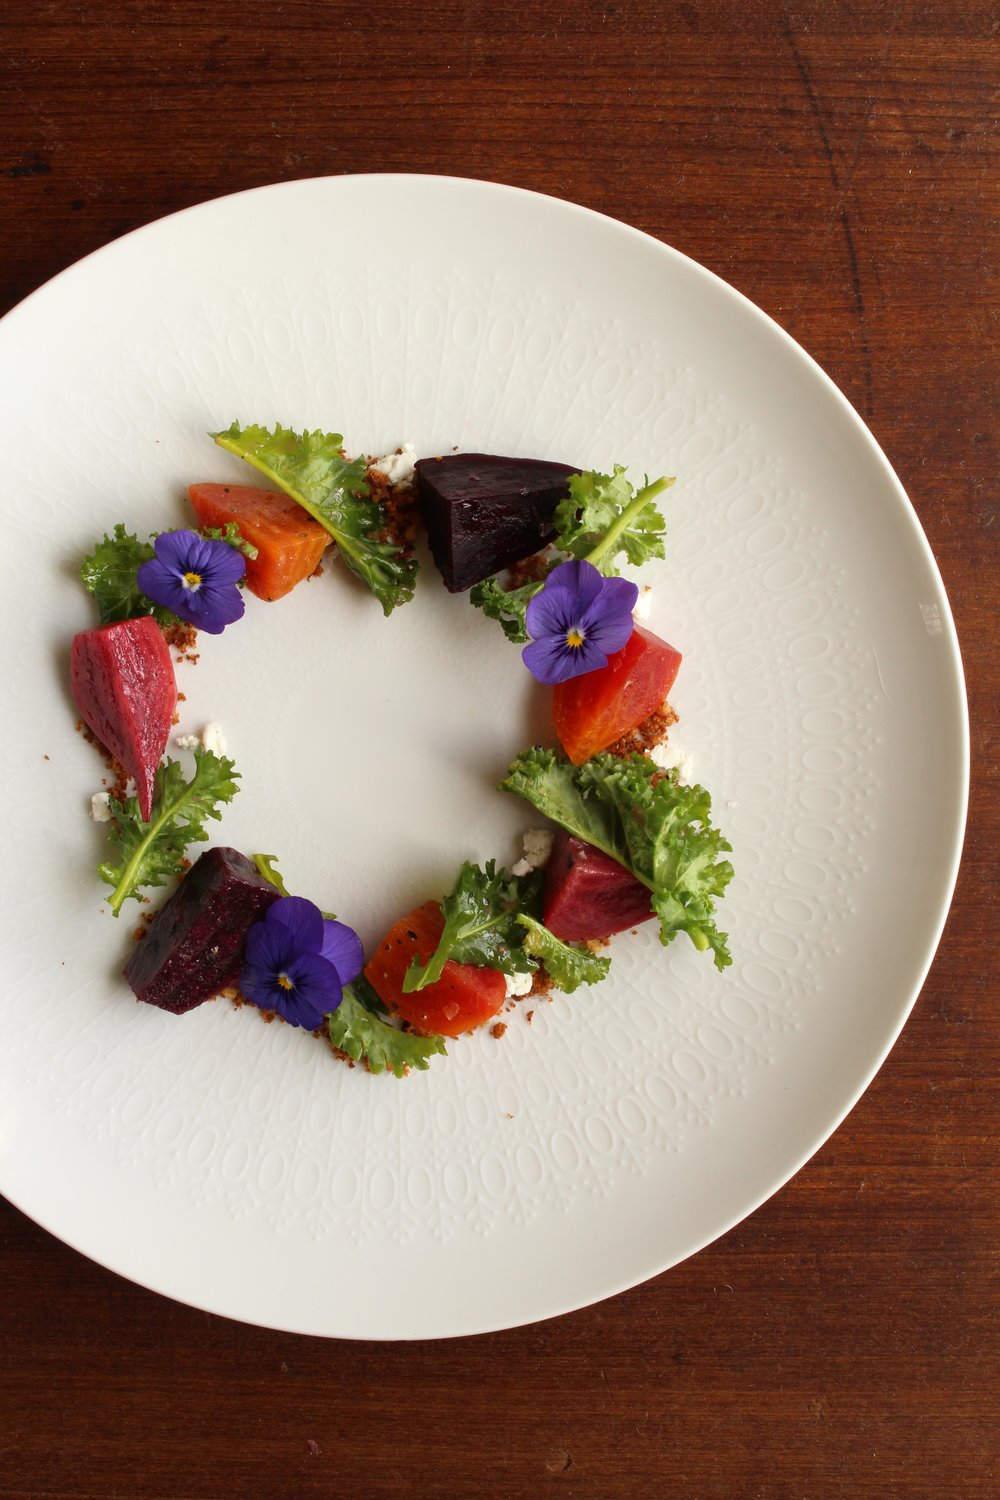 Beet and dirt salad